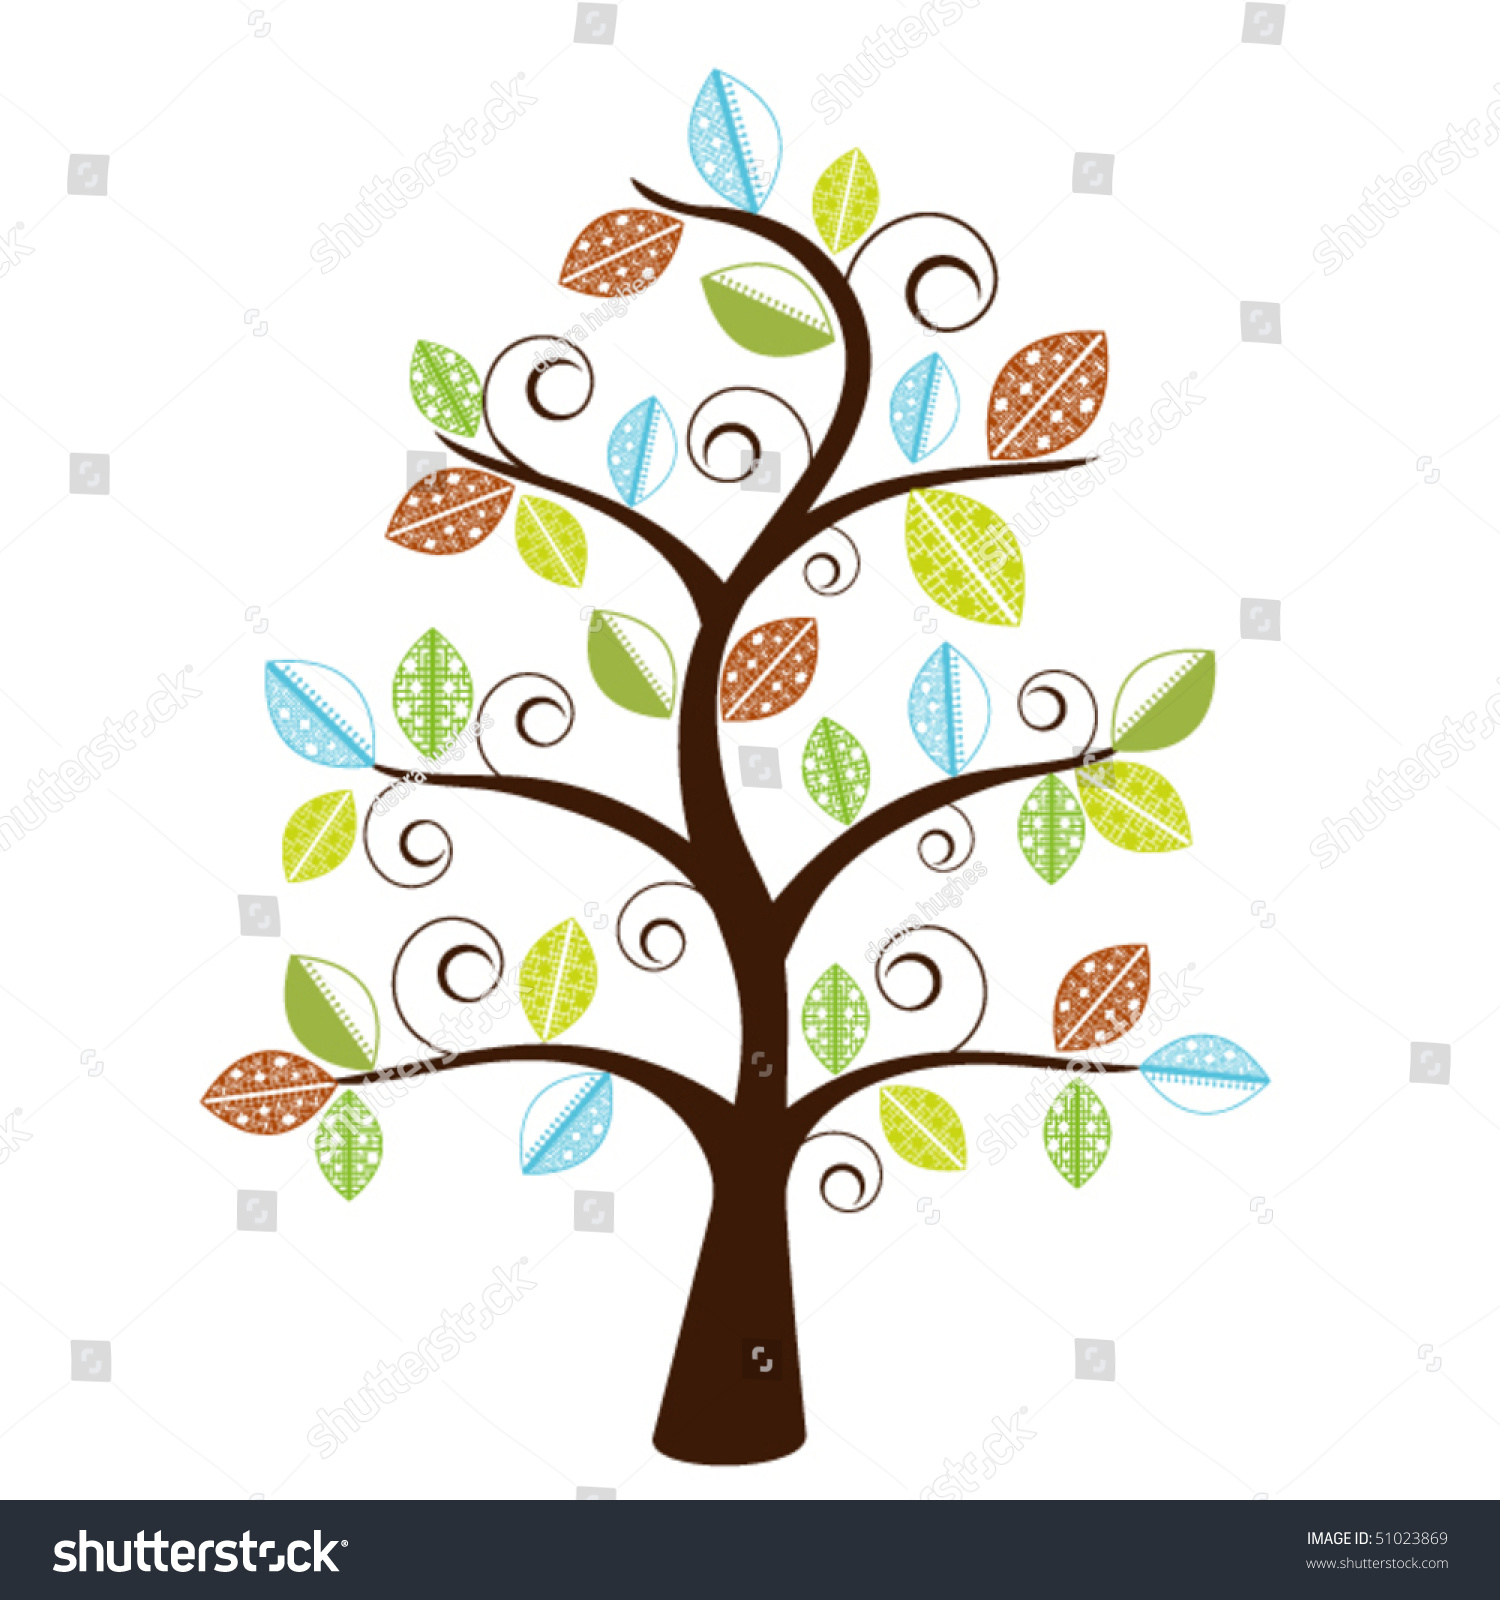 Decorative Whimsical Tree - Funky Leaves Stock Vector ...